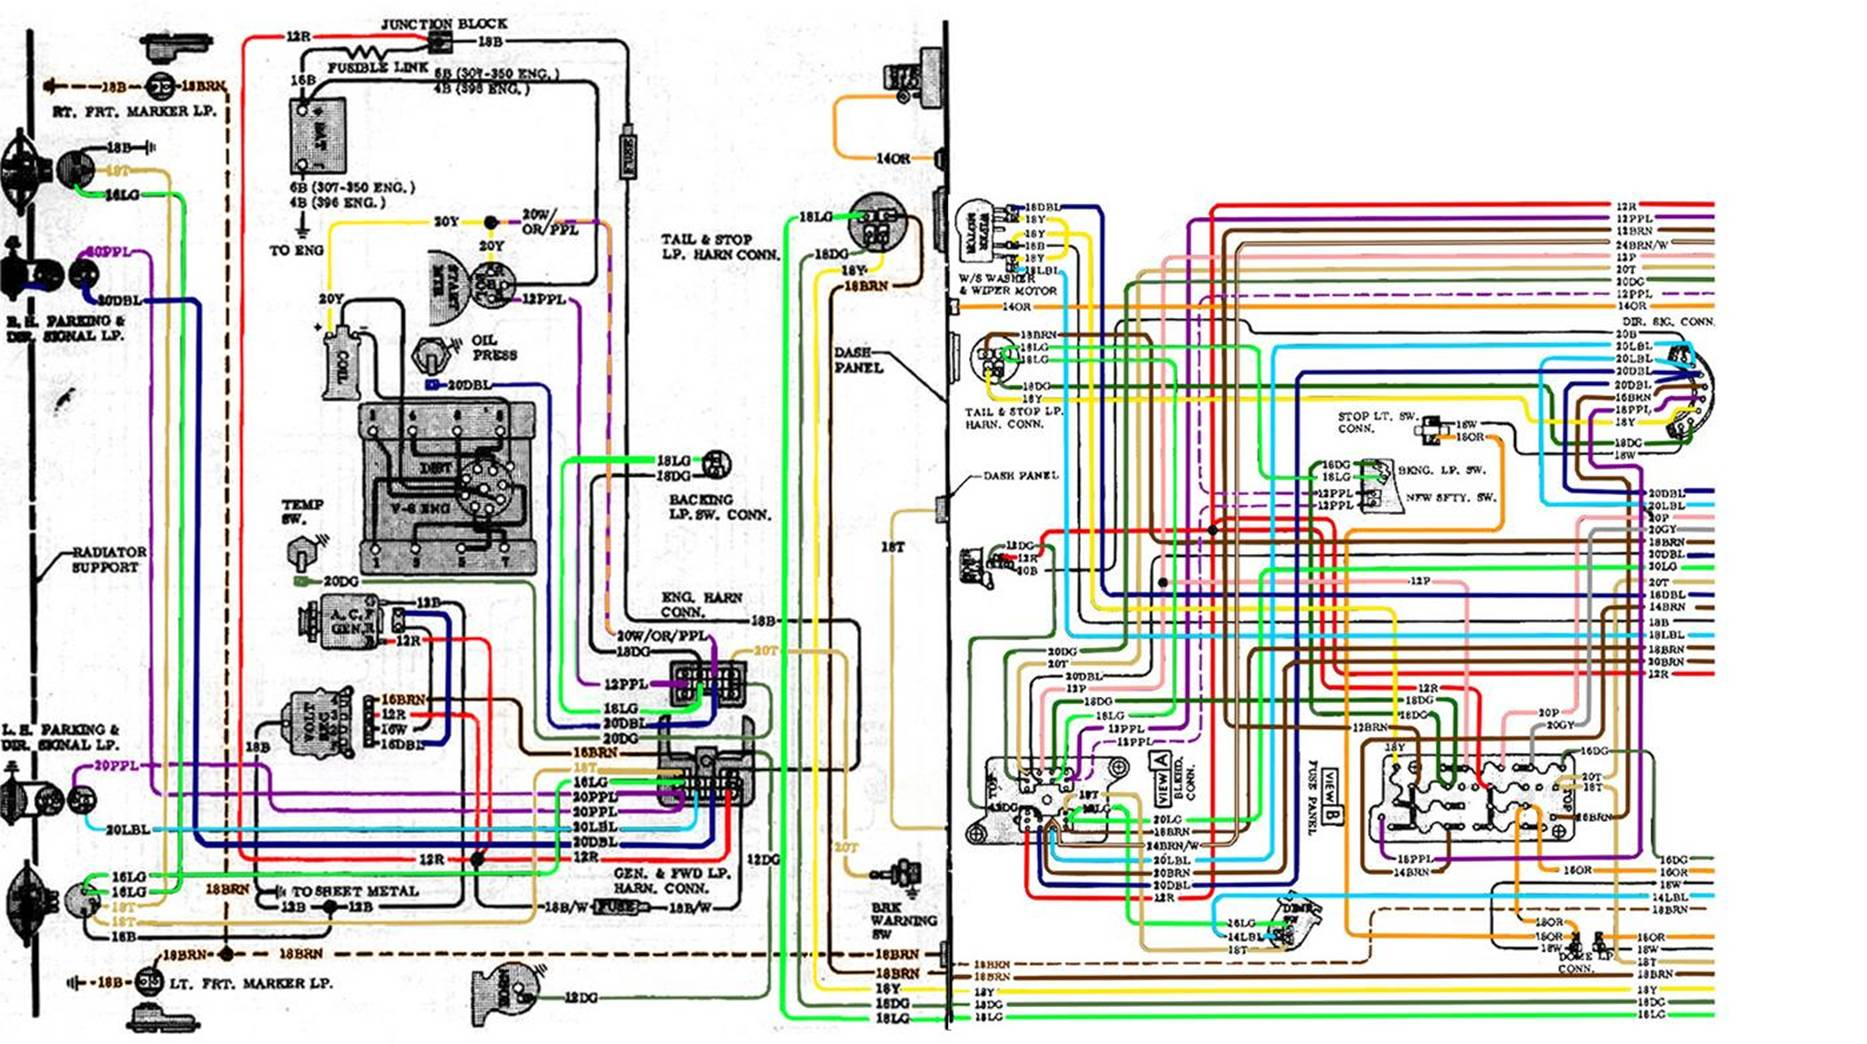 67 Chevy Pickup Wiring Diagram Electrical Schematics Camaro 72 89